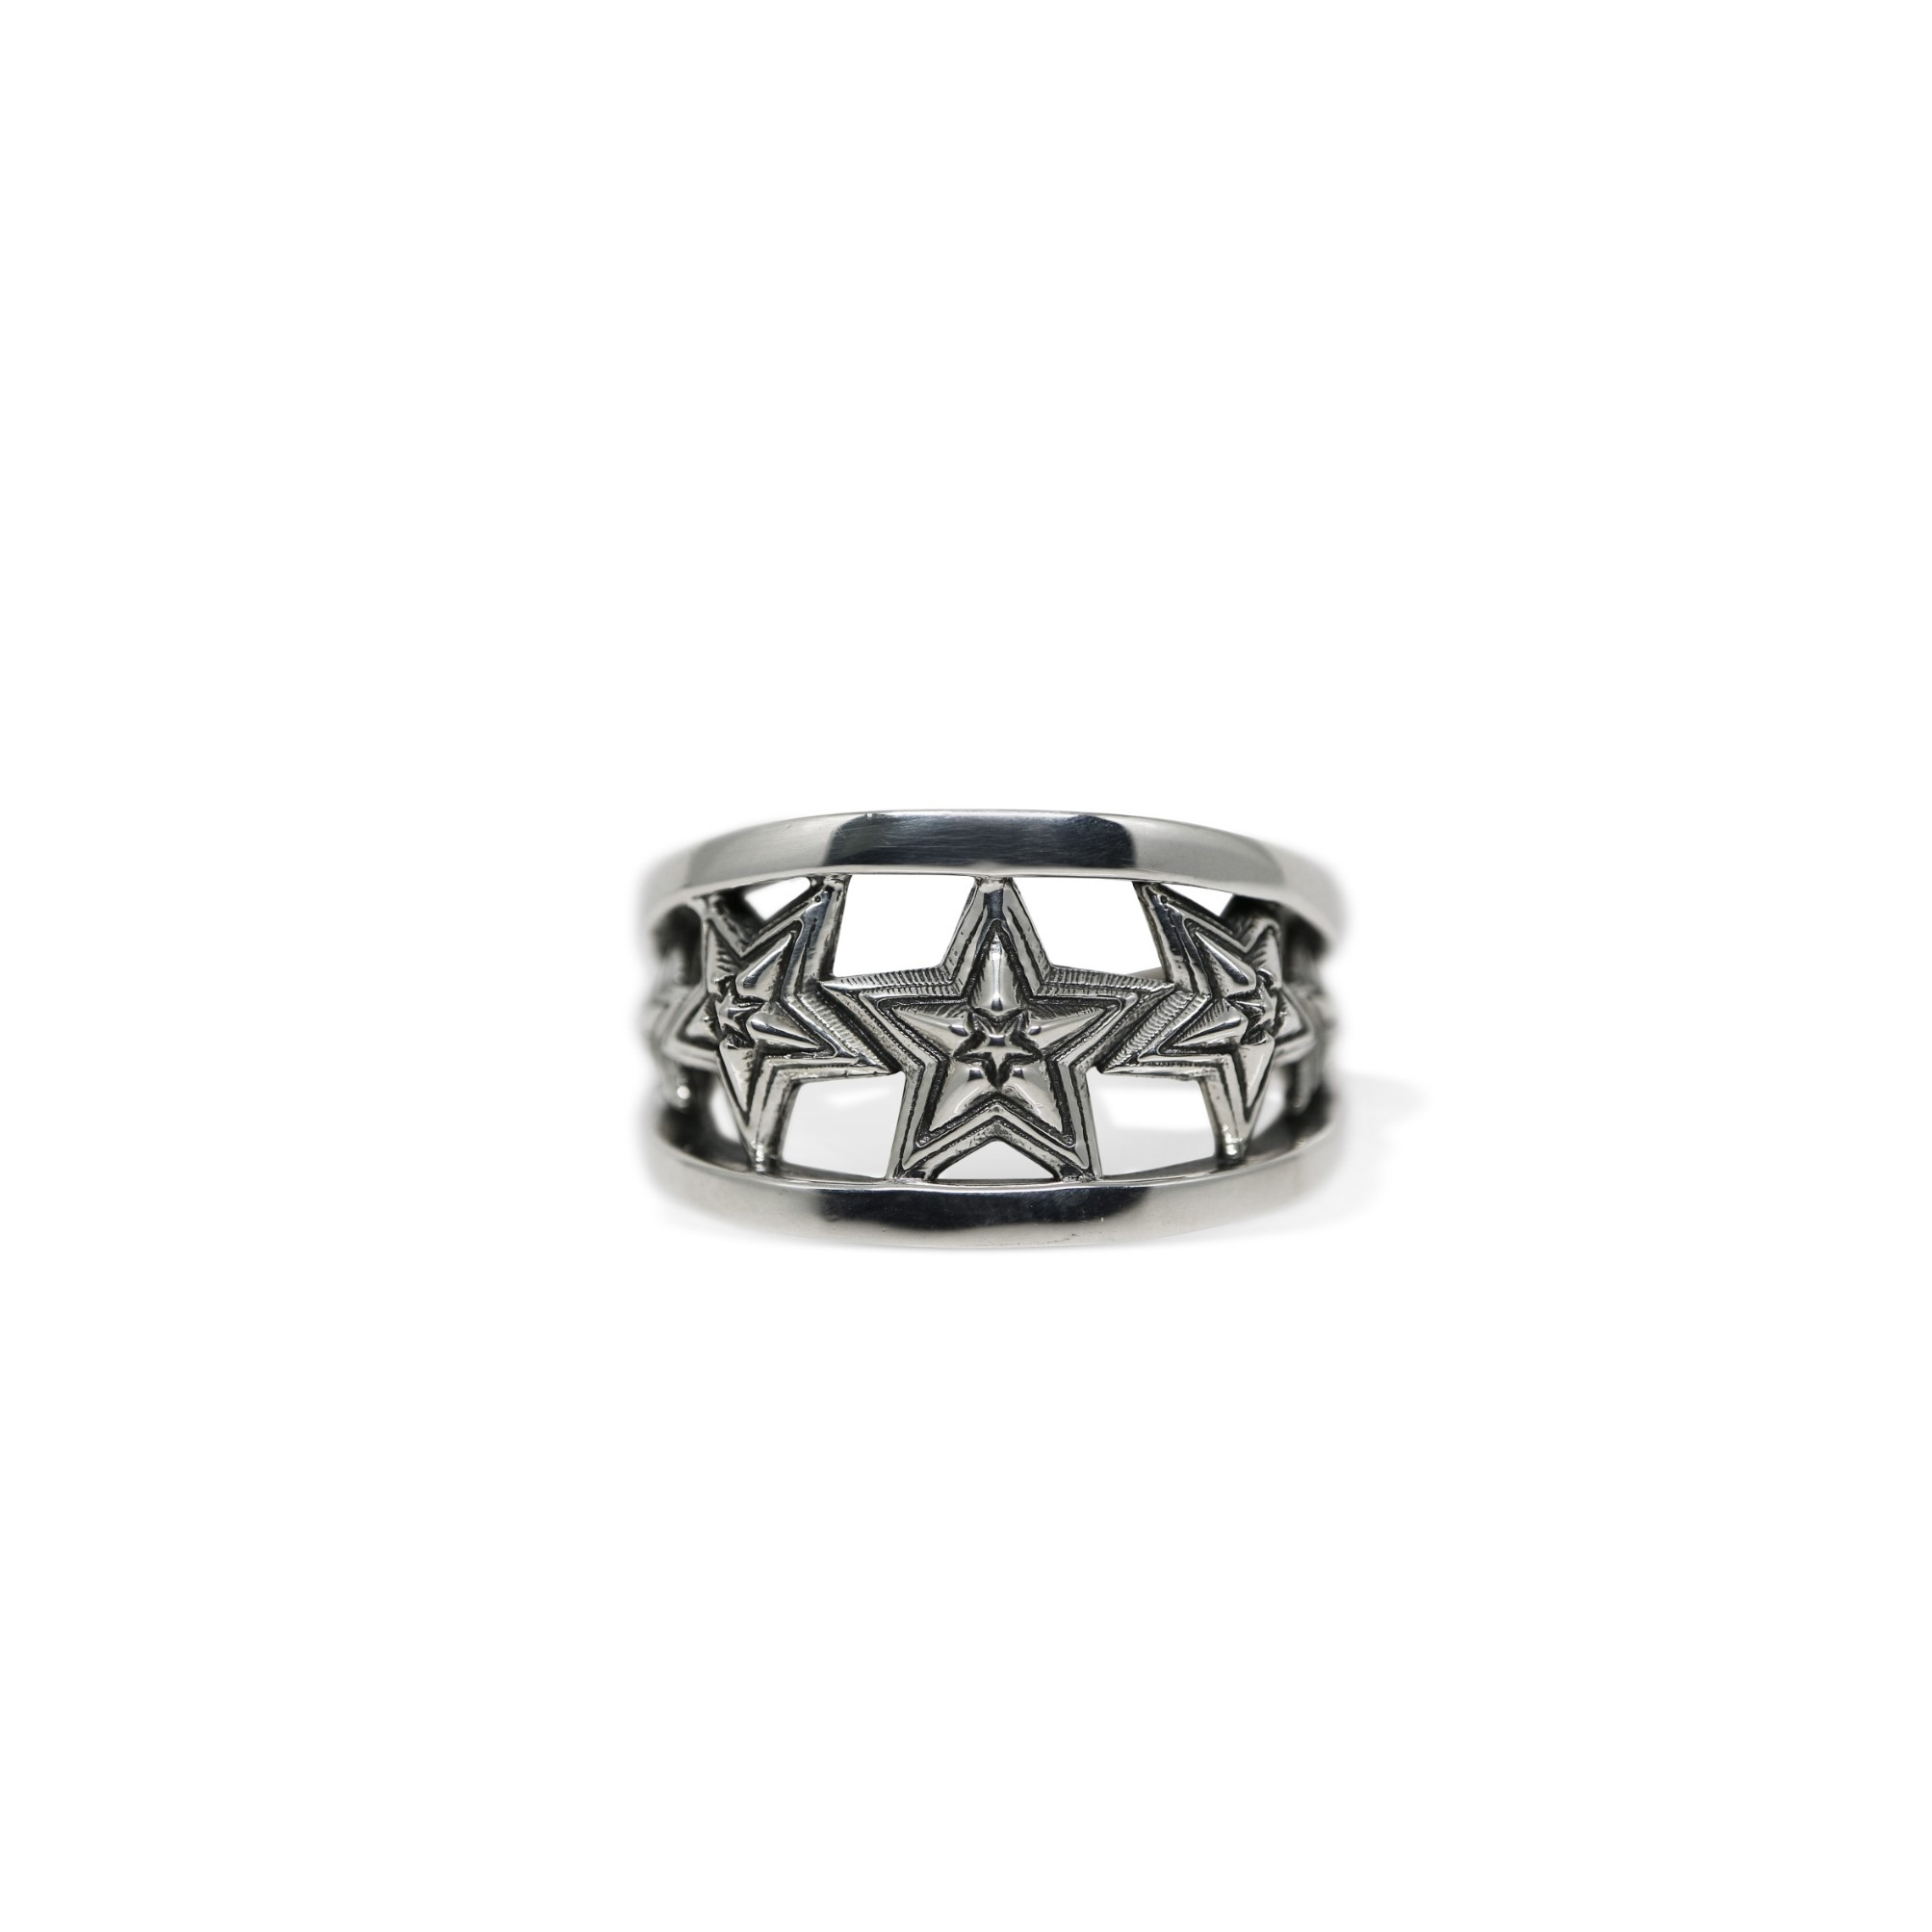 5 STAR IN STAR CUT OUT RING [USD $530]